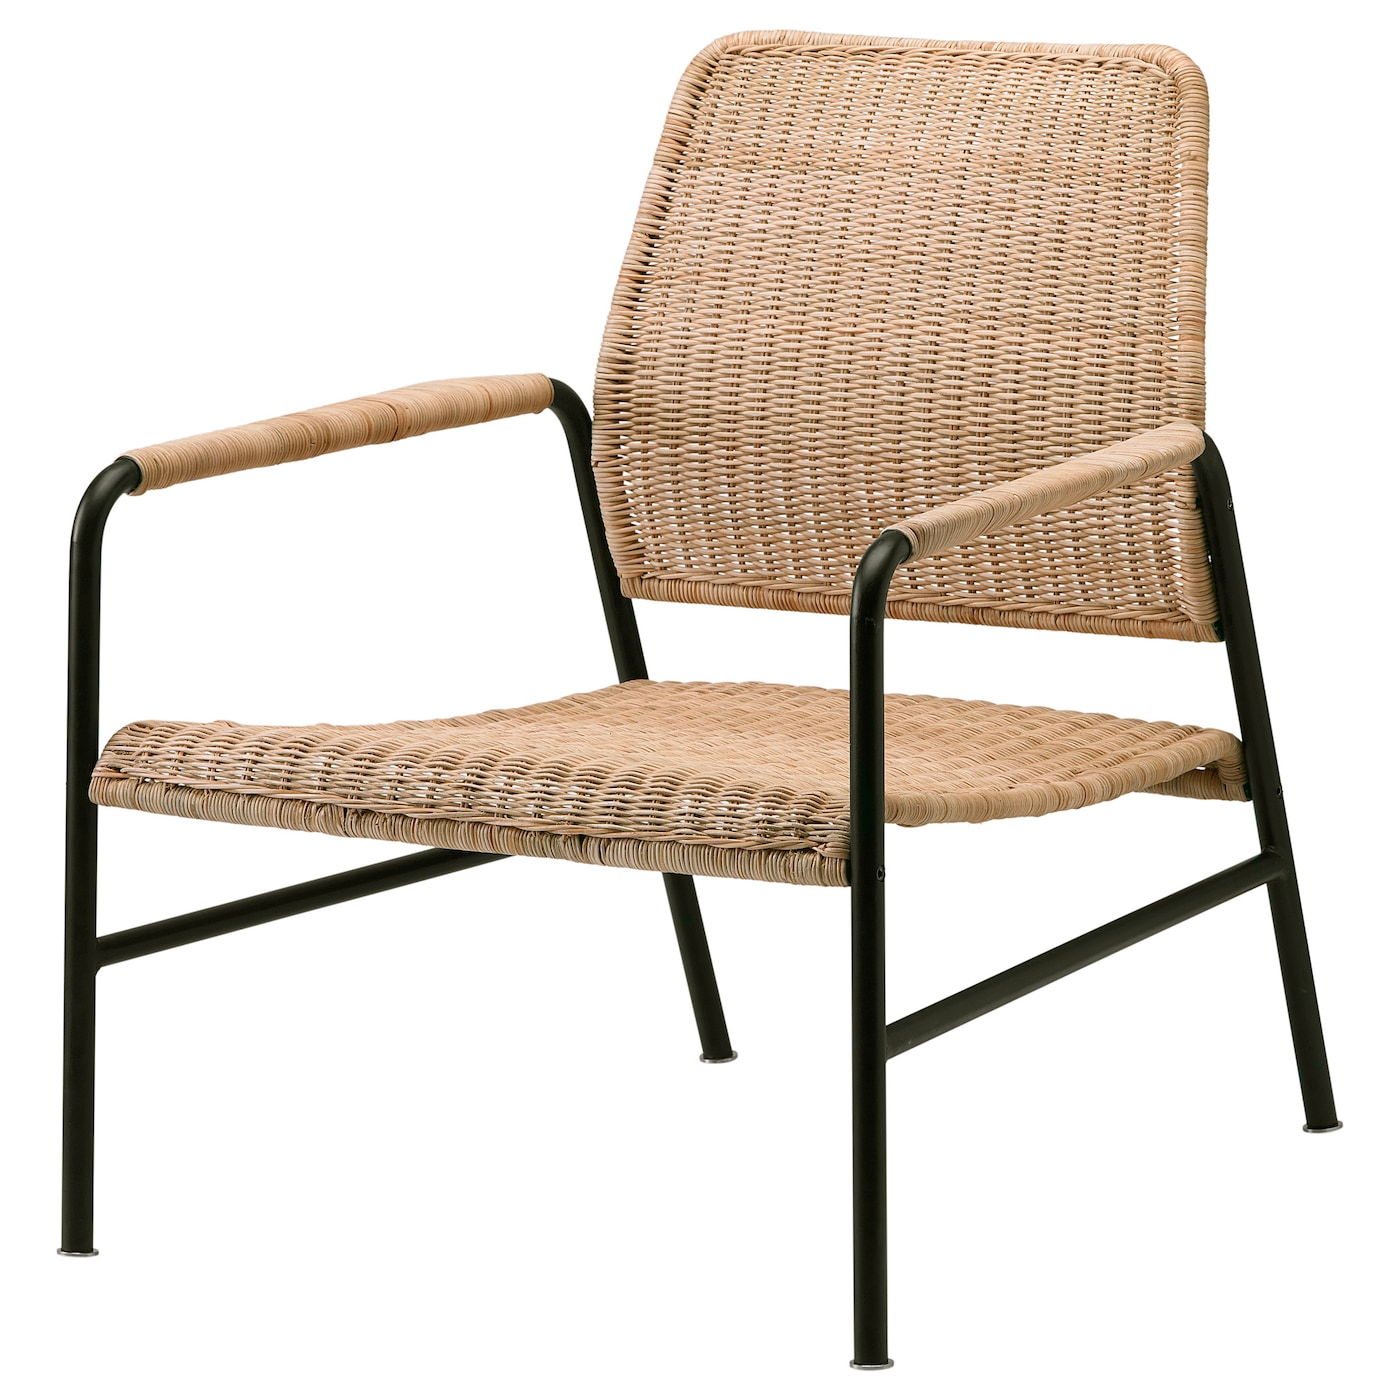 IKEA ULRIKSBERG armchair Easy to bring home since it's lightweight and flat-packed.